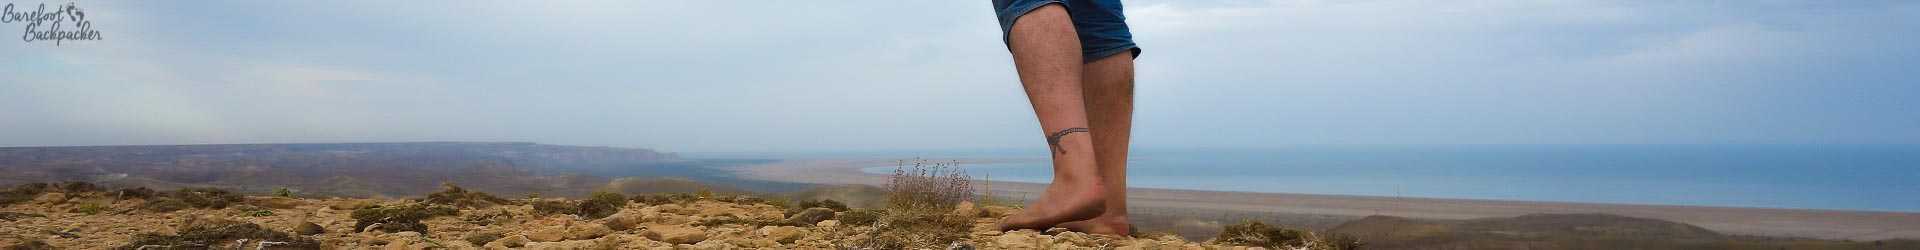 The Barefoot Backpacker